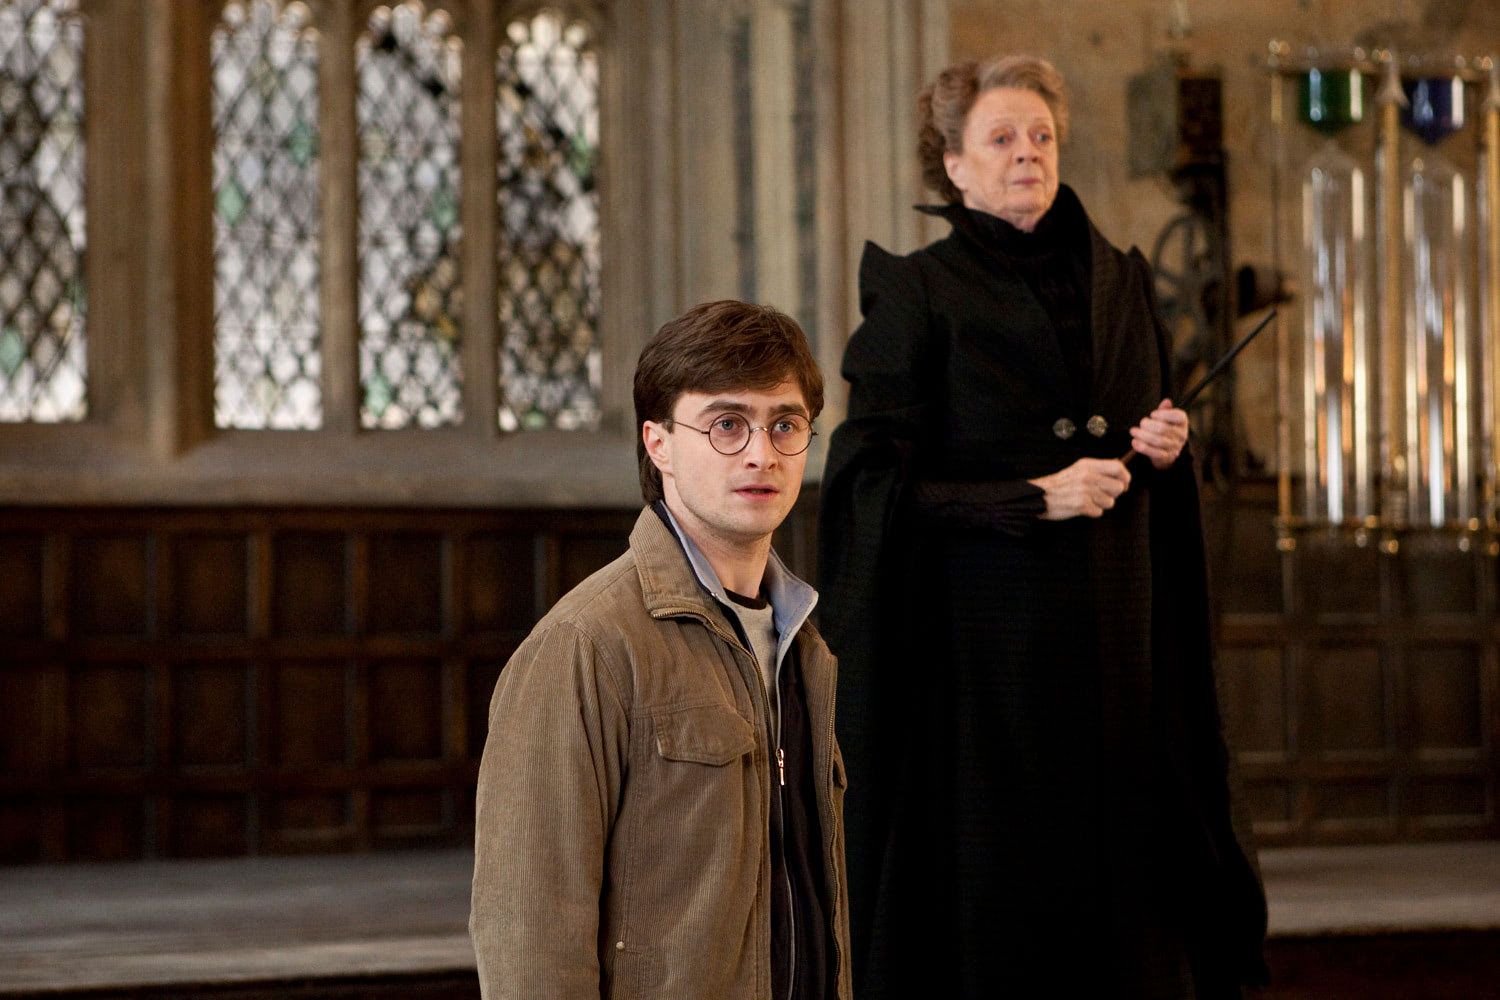 Harry and McGonagall in the Great Hall